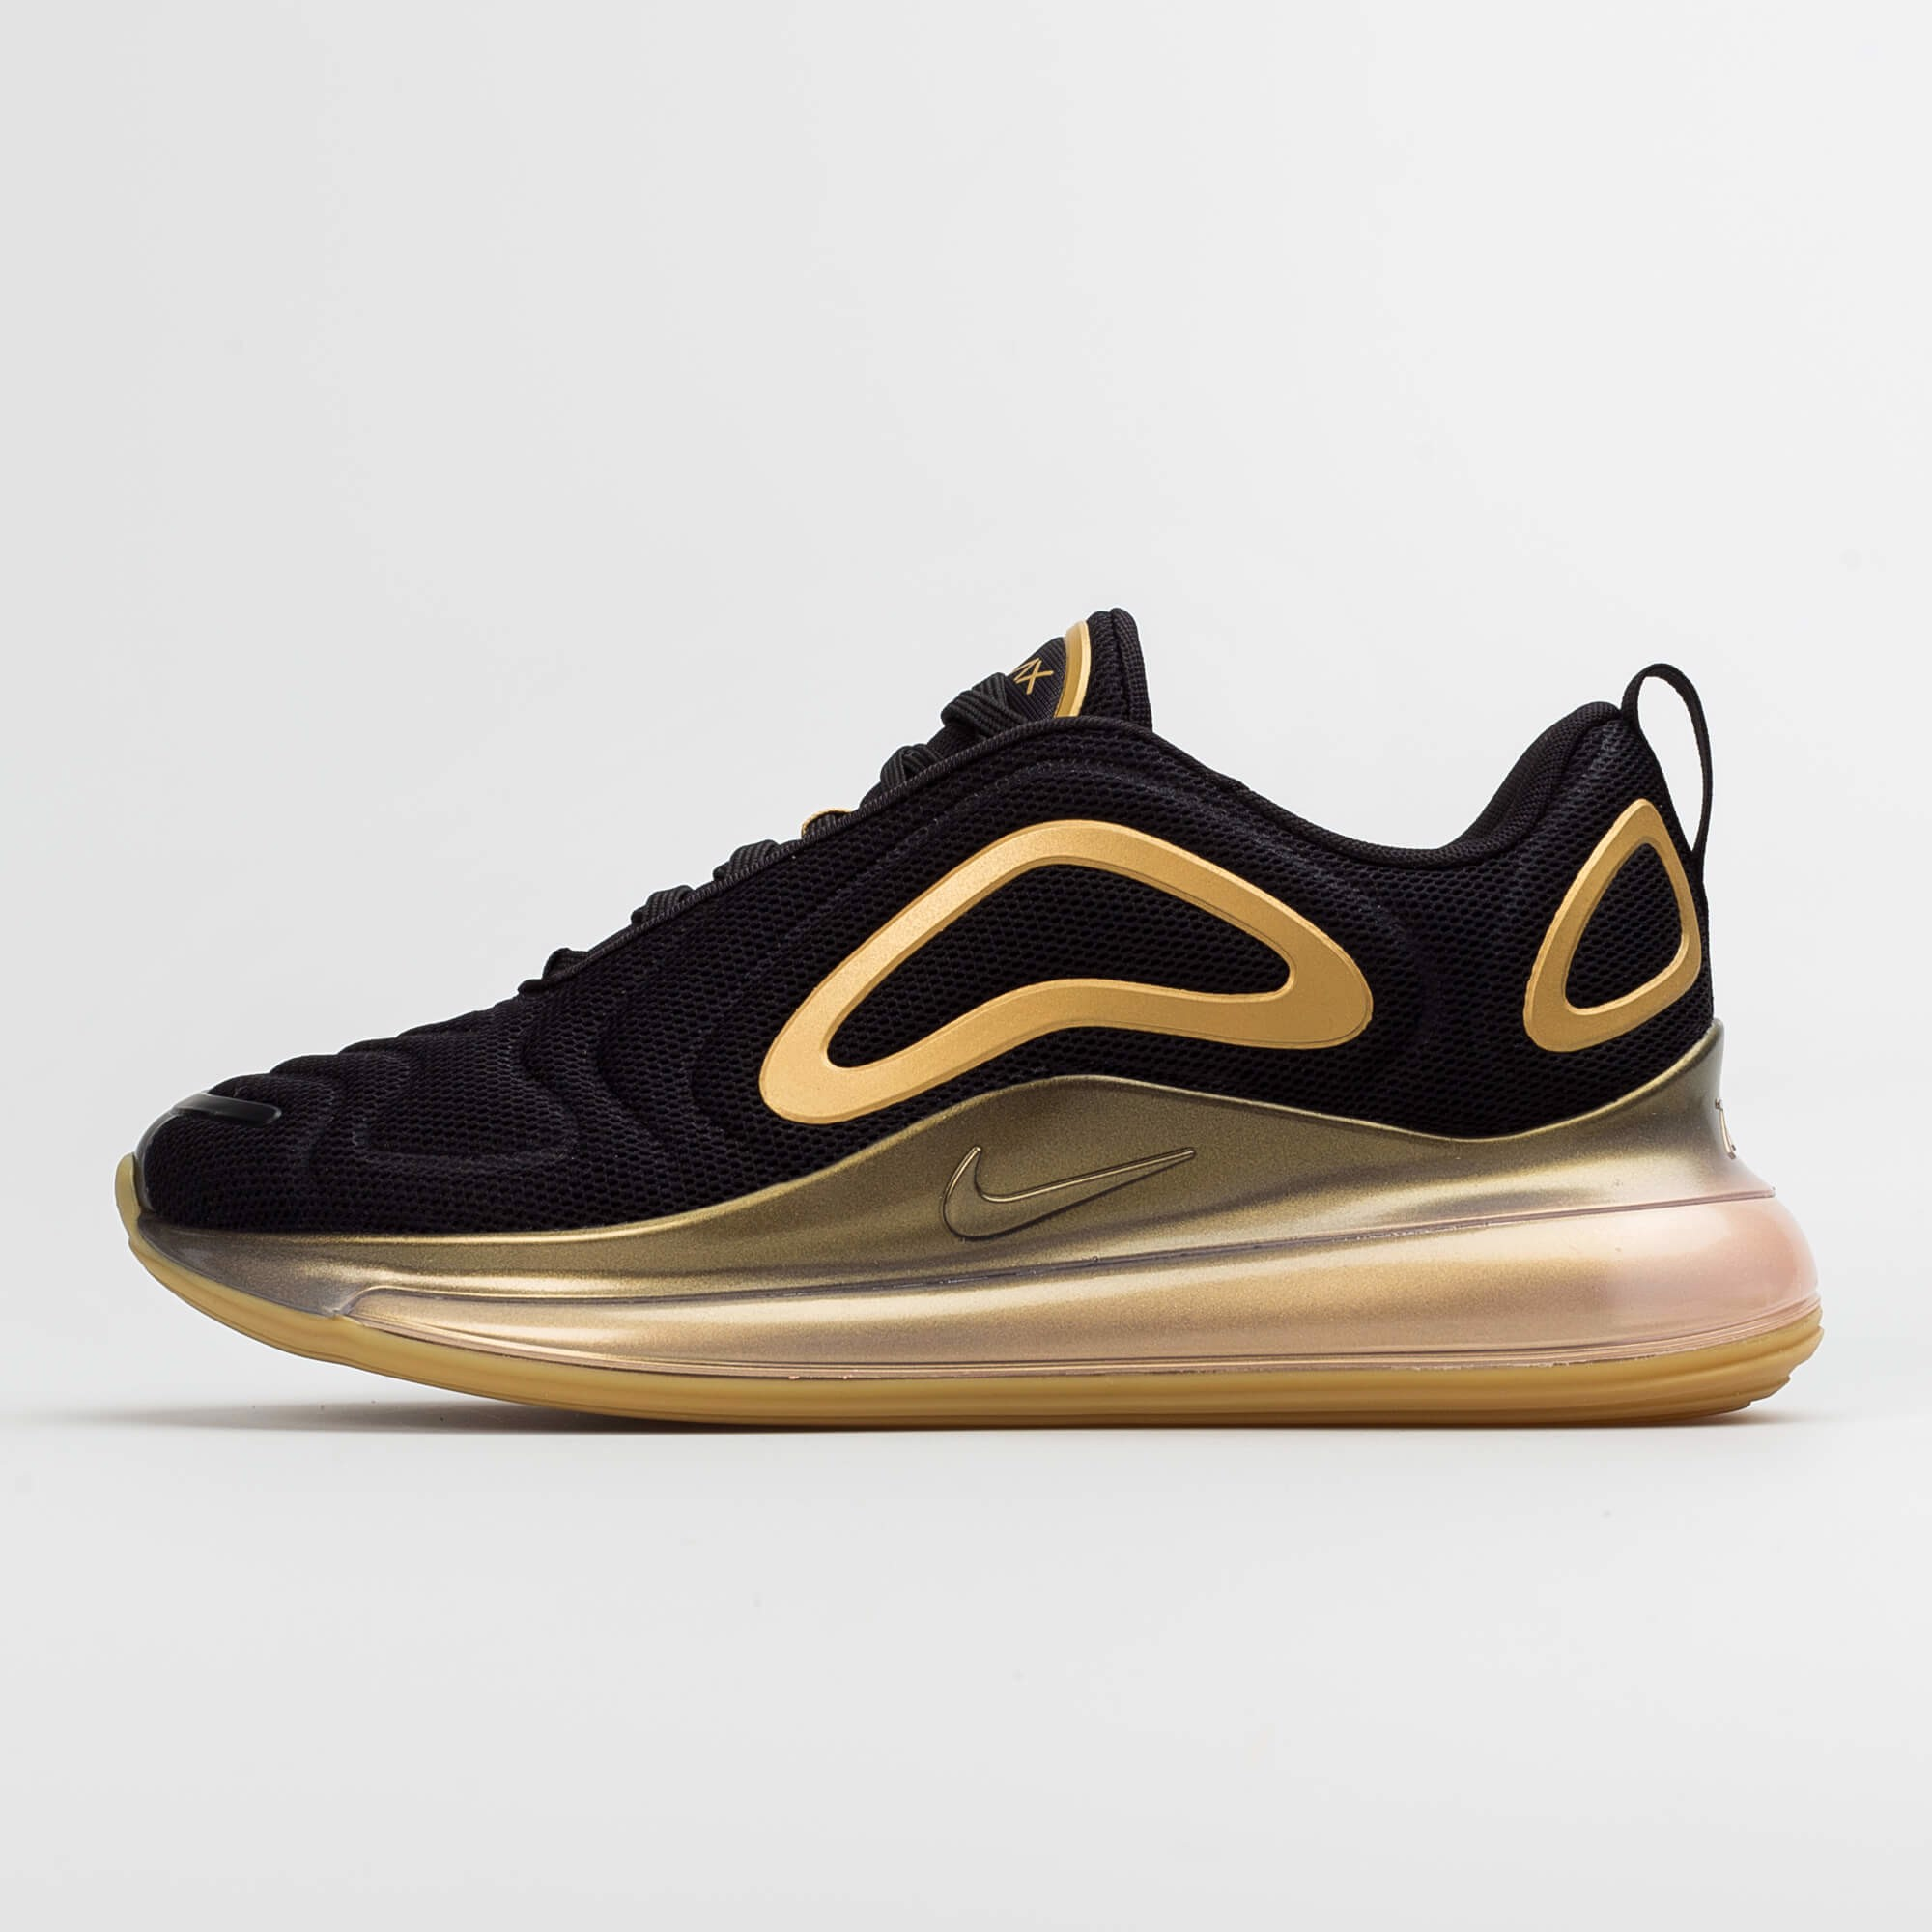 Giày Nike Air Max 720 nam CJ0585-002